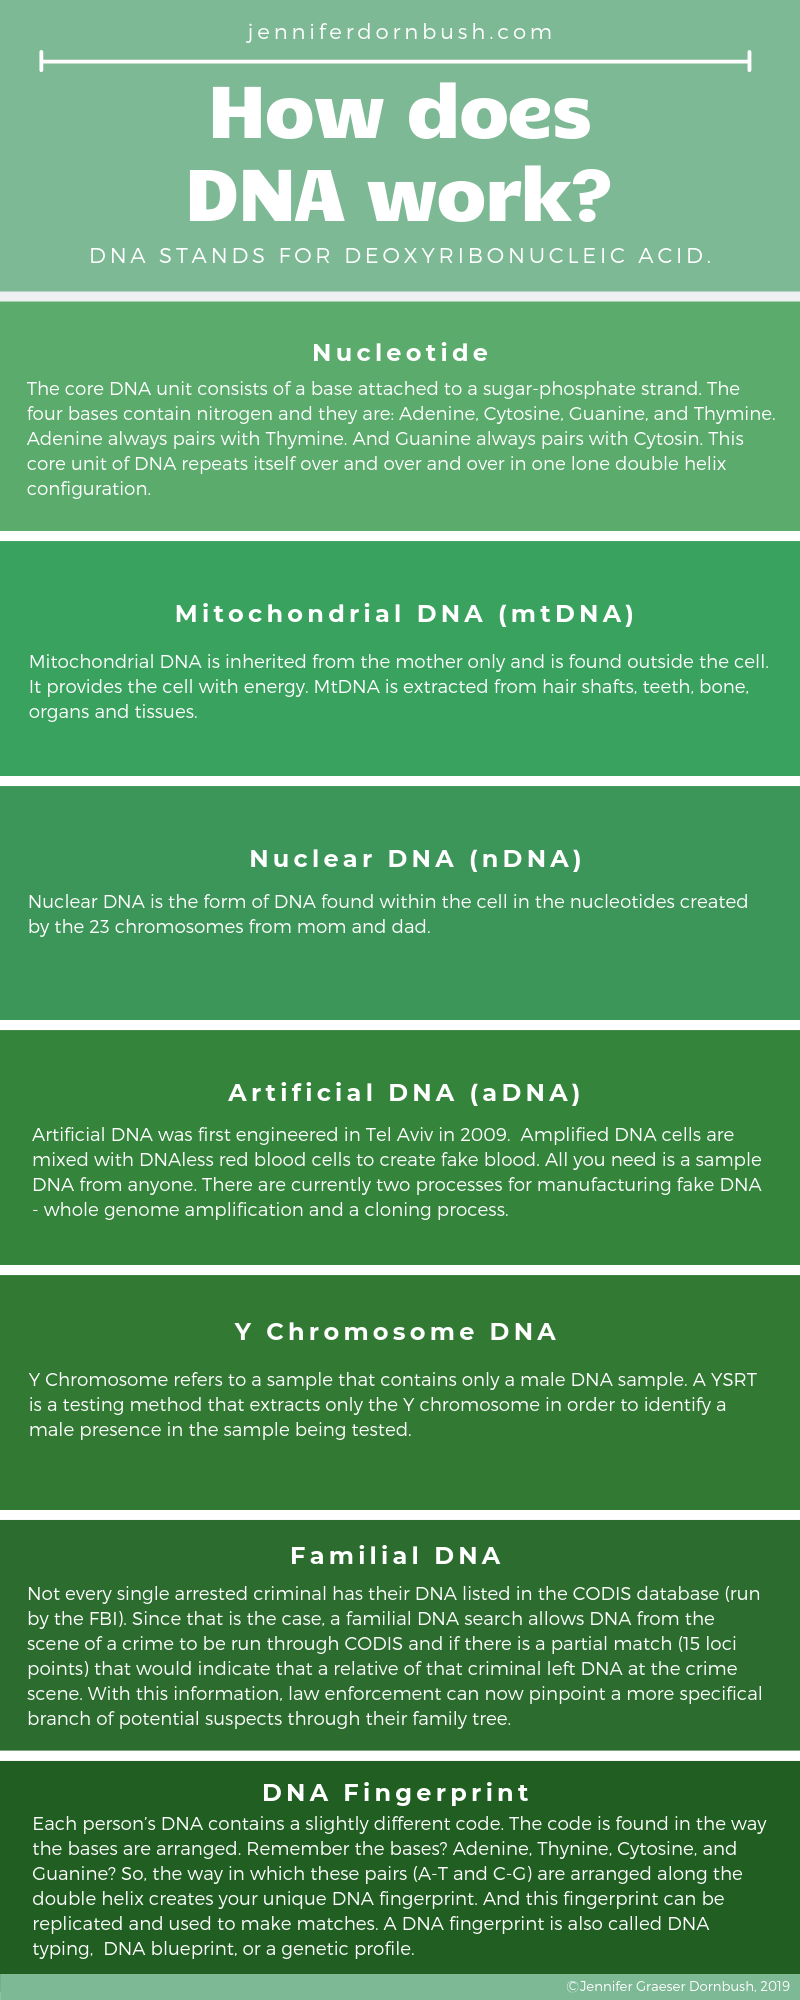 How does DNA work?-2.png